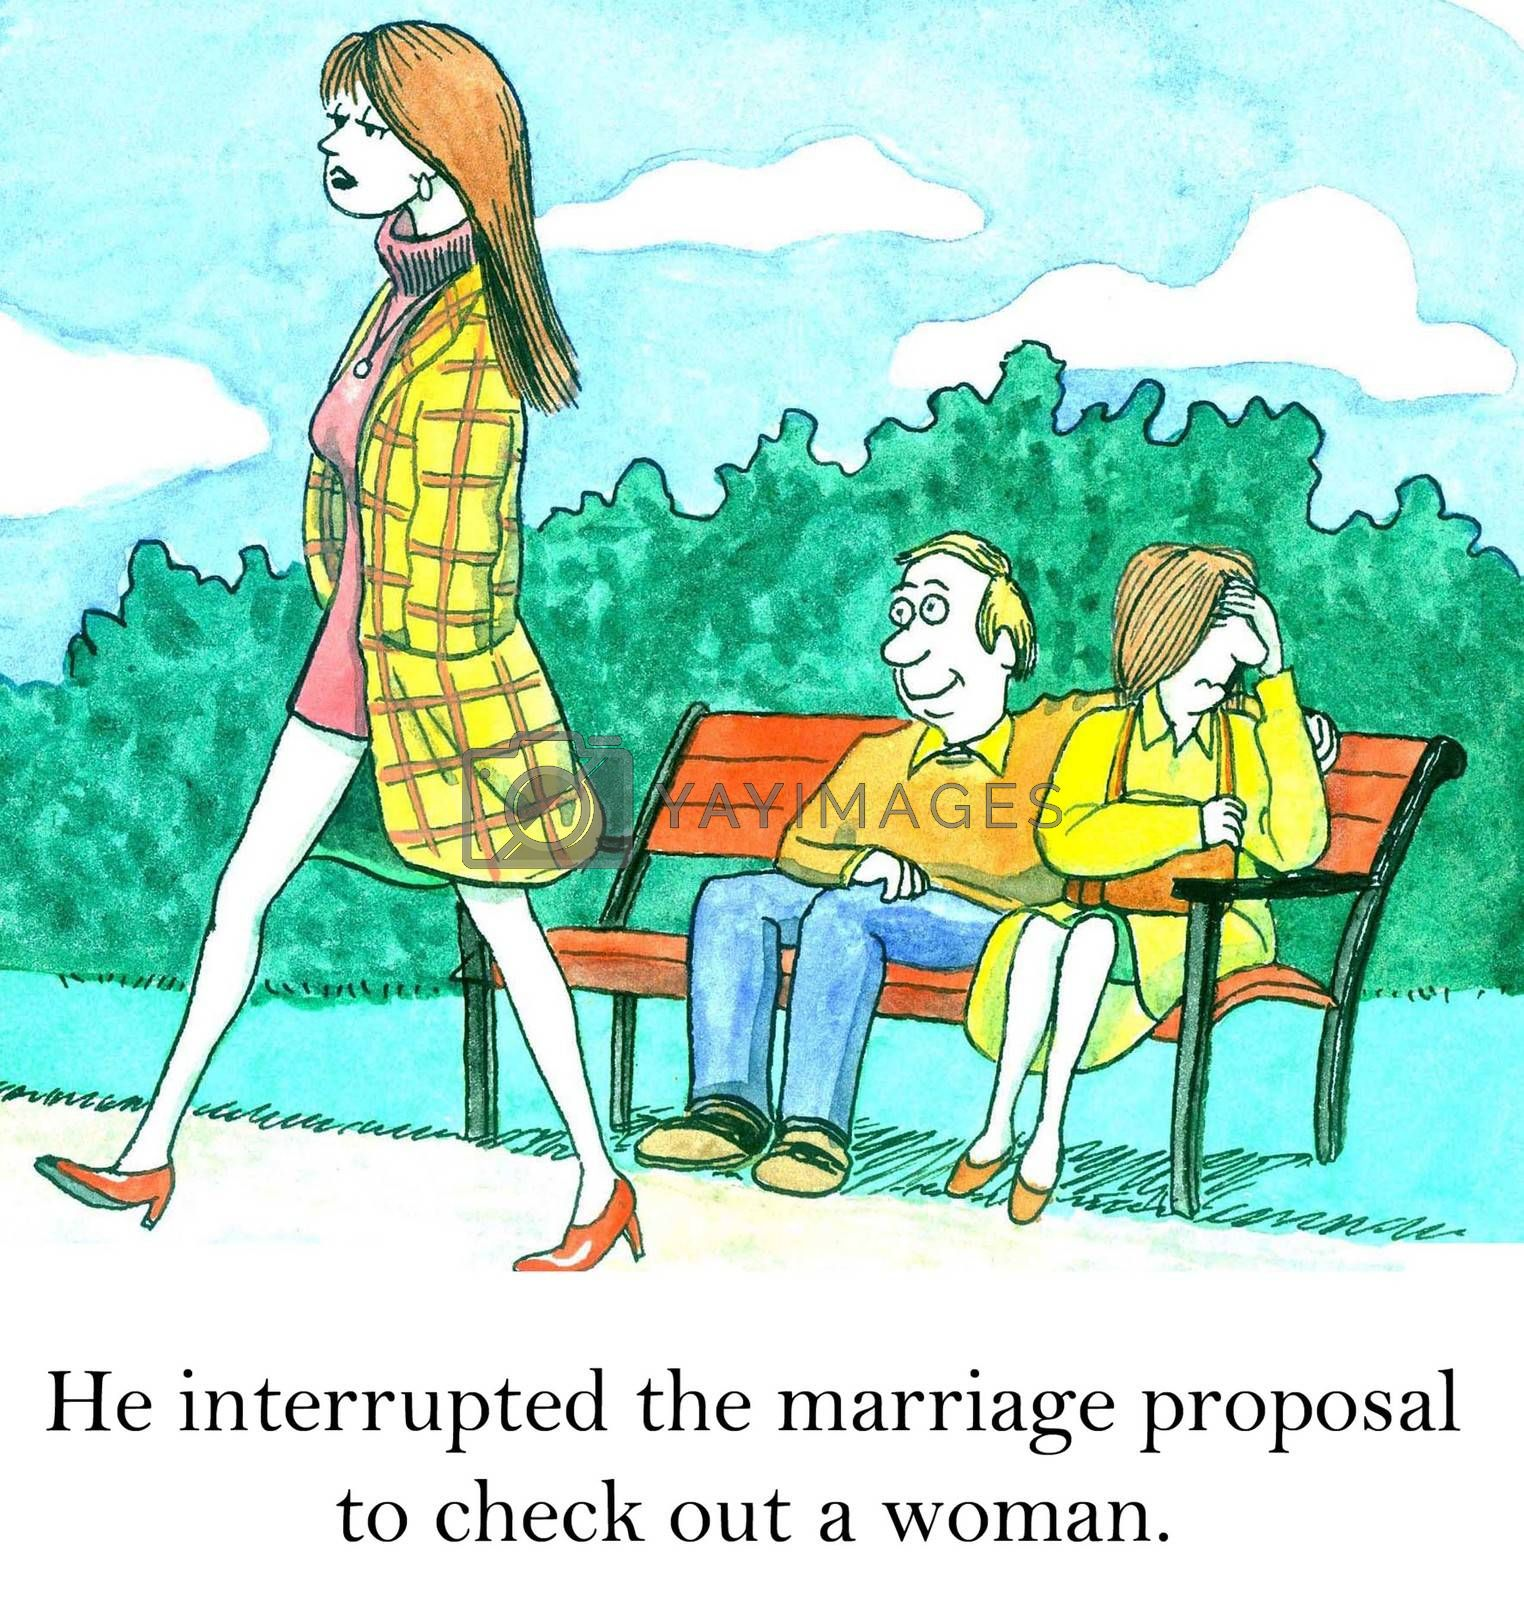 He interrupted the marriage proposal to check out a woman.